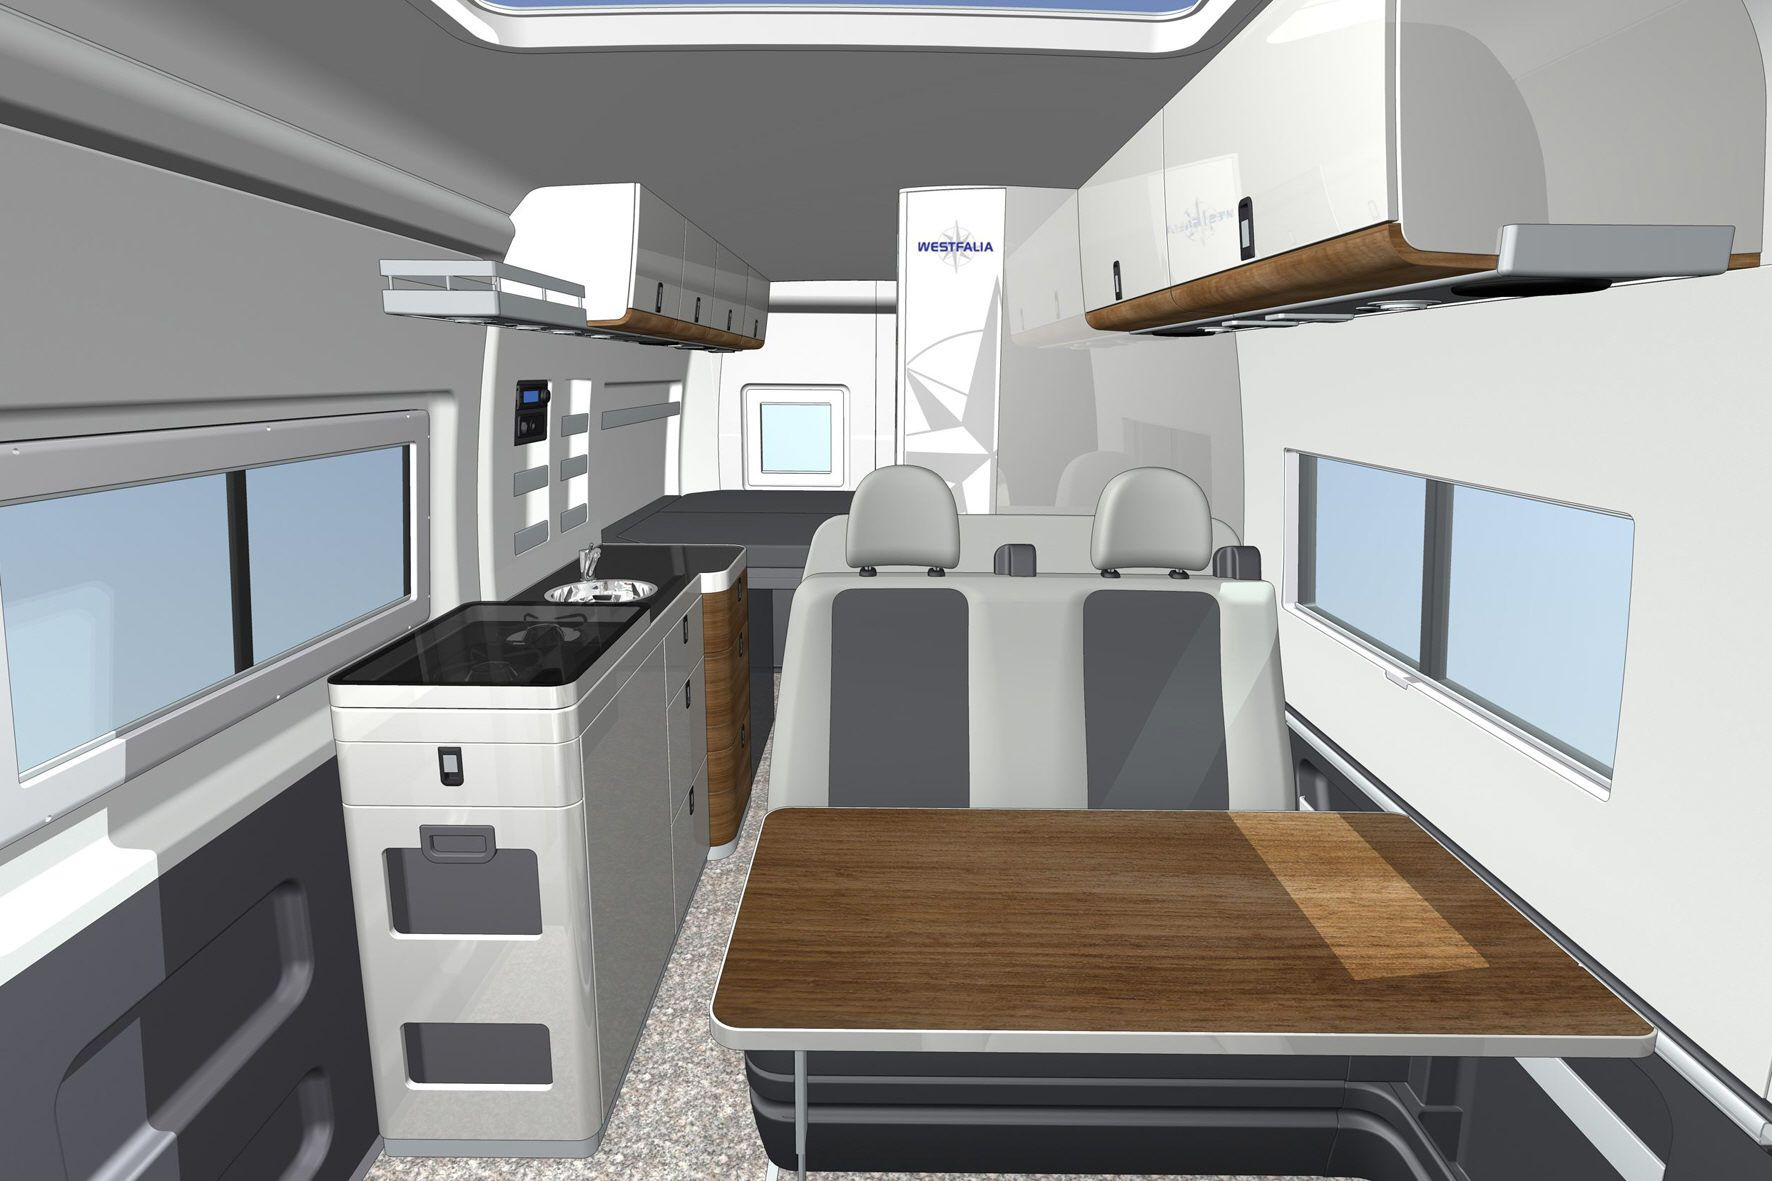 Westfalia De Luxe Camper Van Conversion Diy Campervan Interior